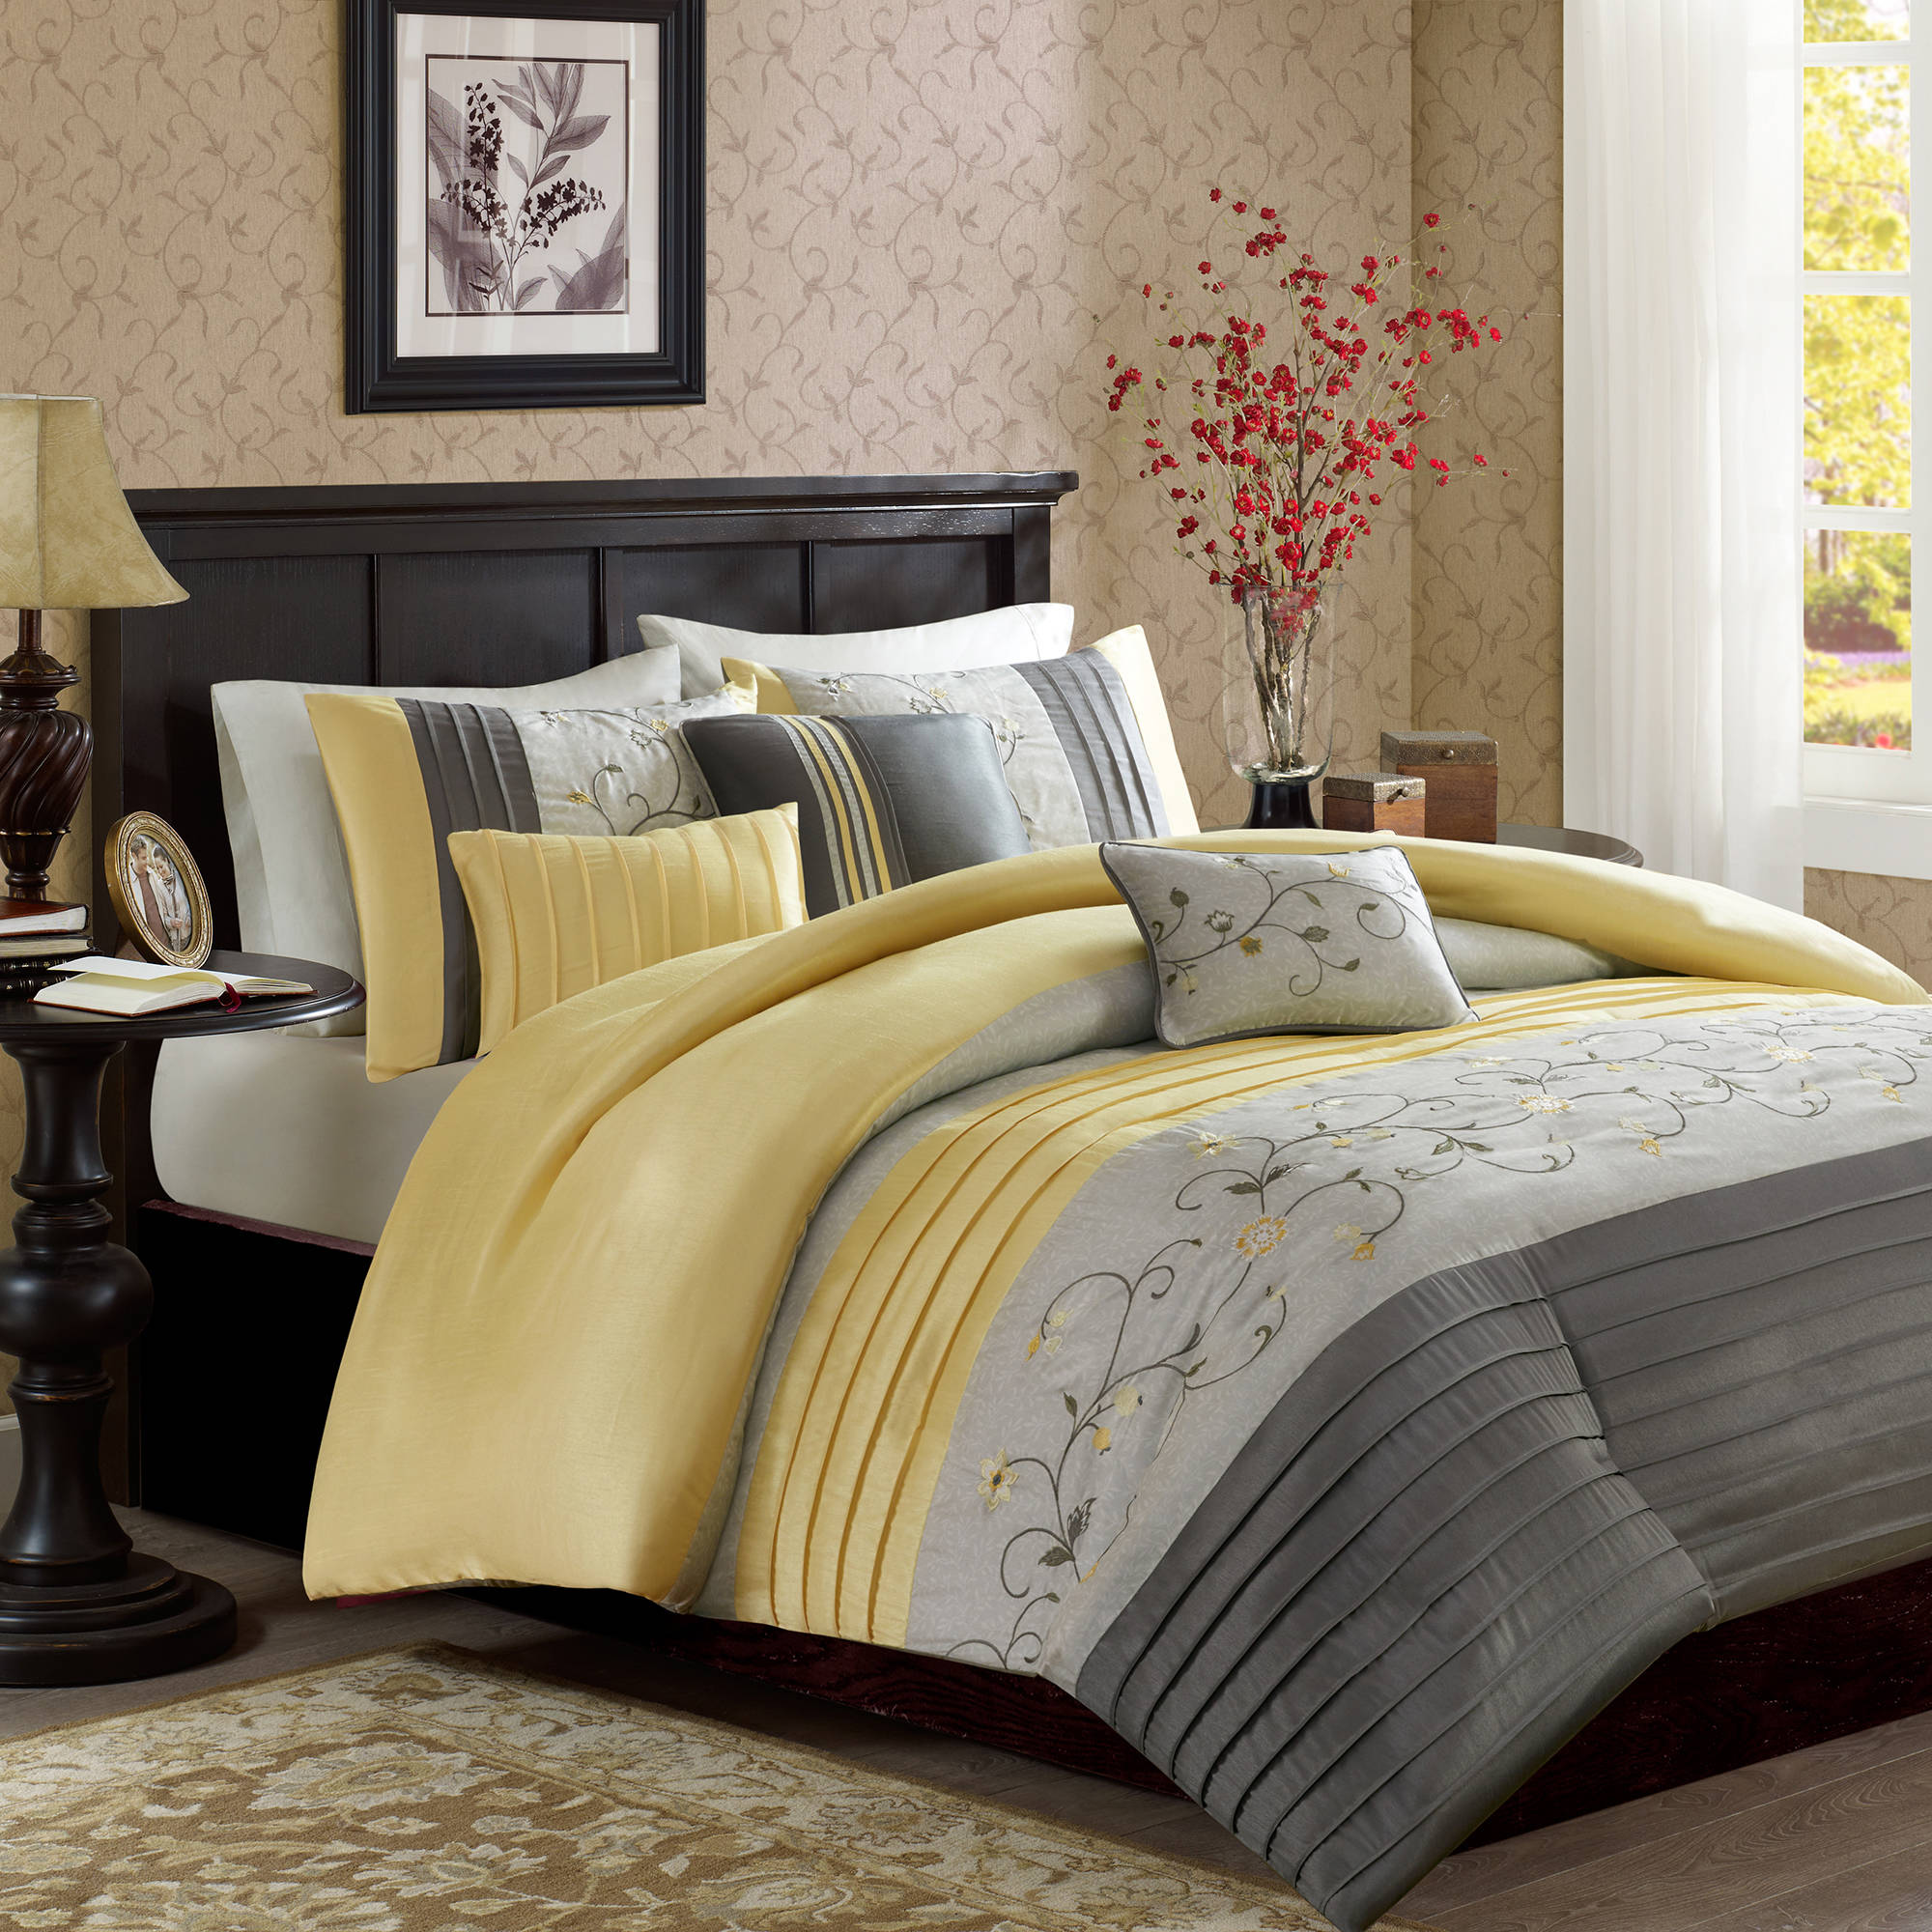 Home Essence Monroe 6-Piece Bedding Duvet Cover Set